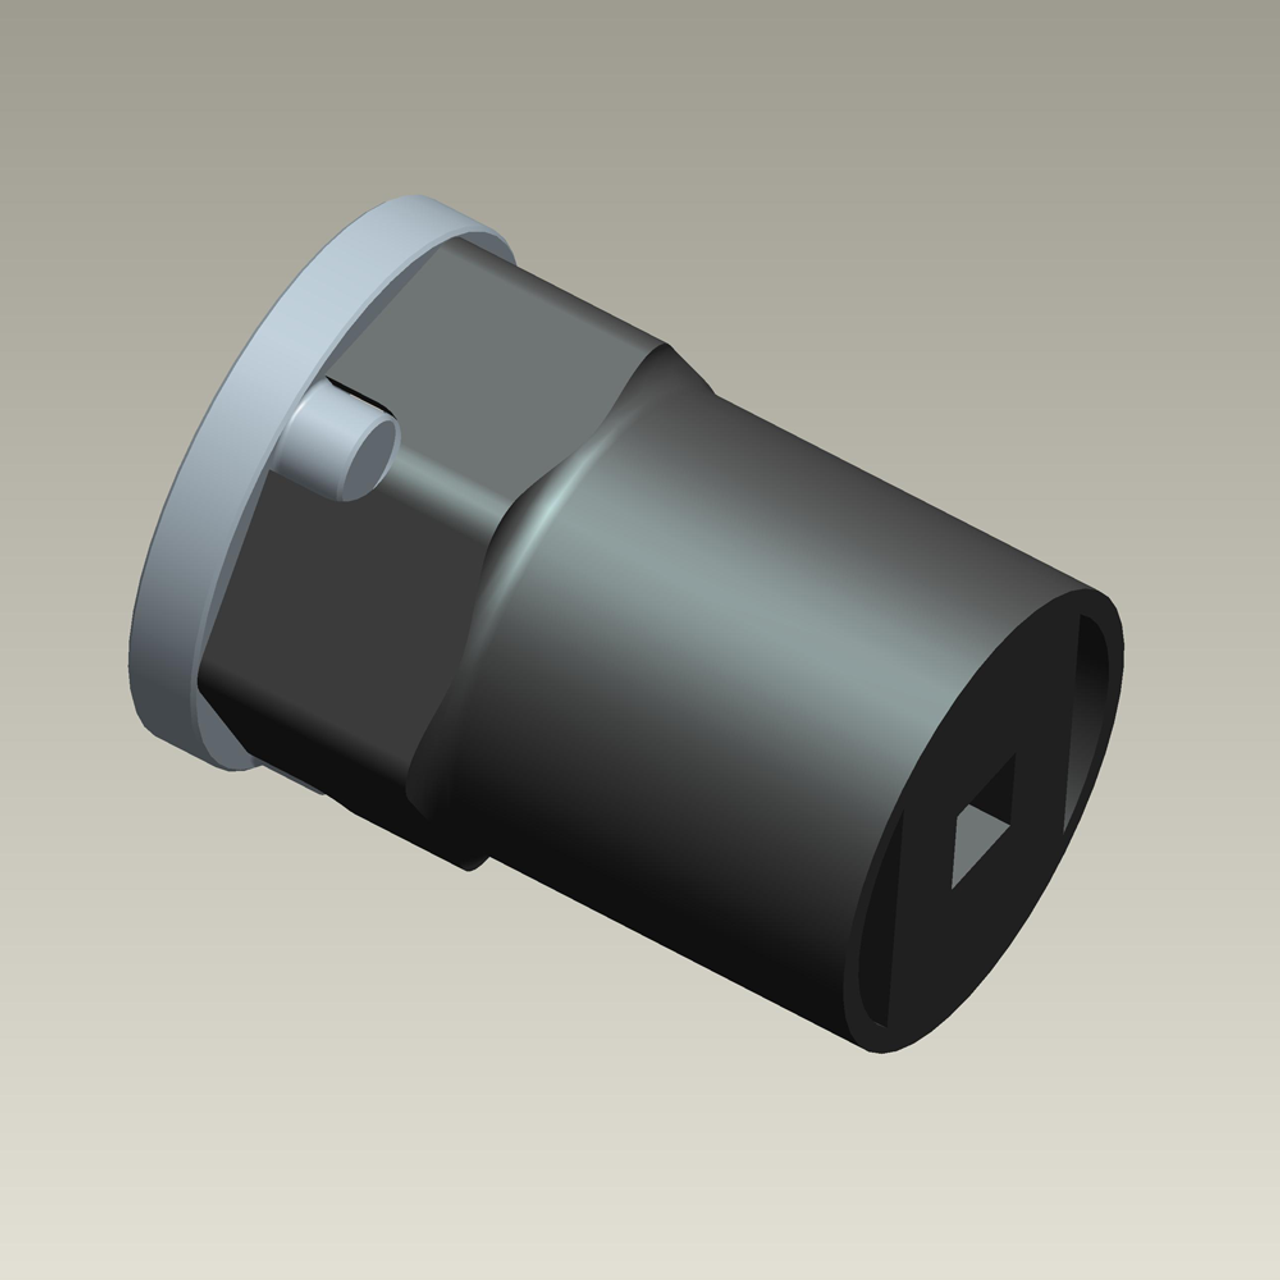 Modified 54mm Hub Nut Tool (HUB-1)